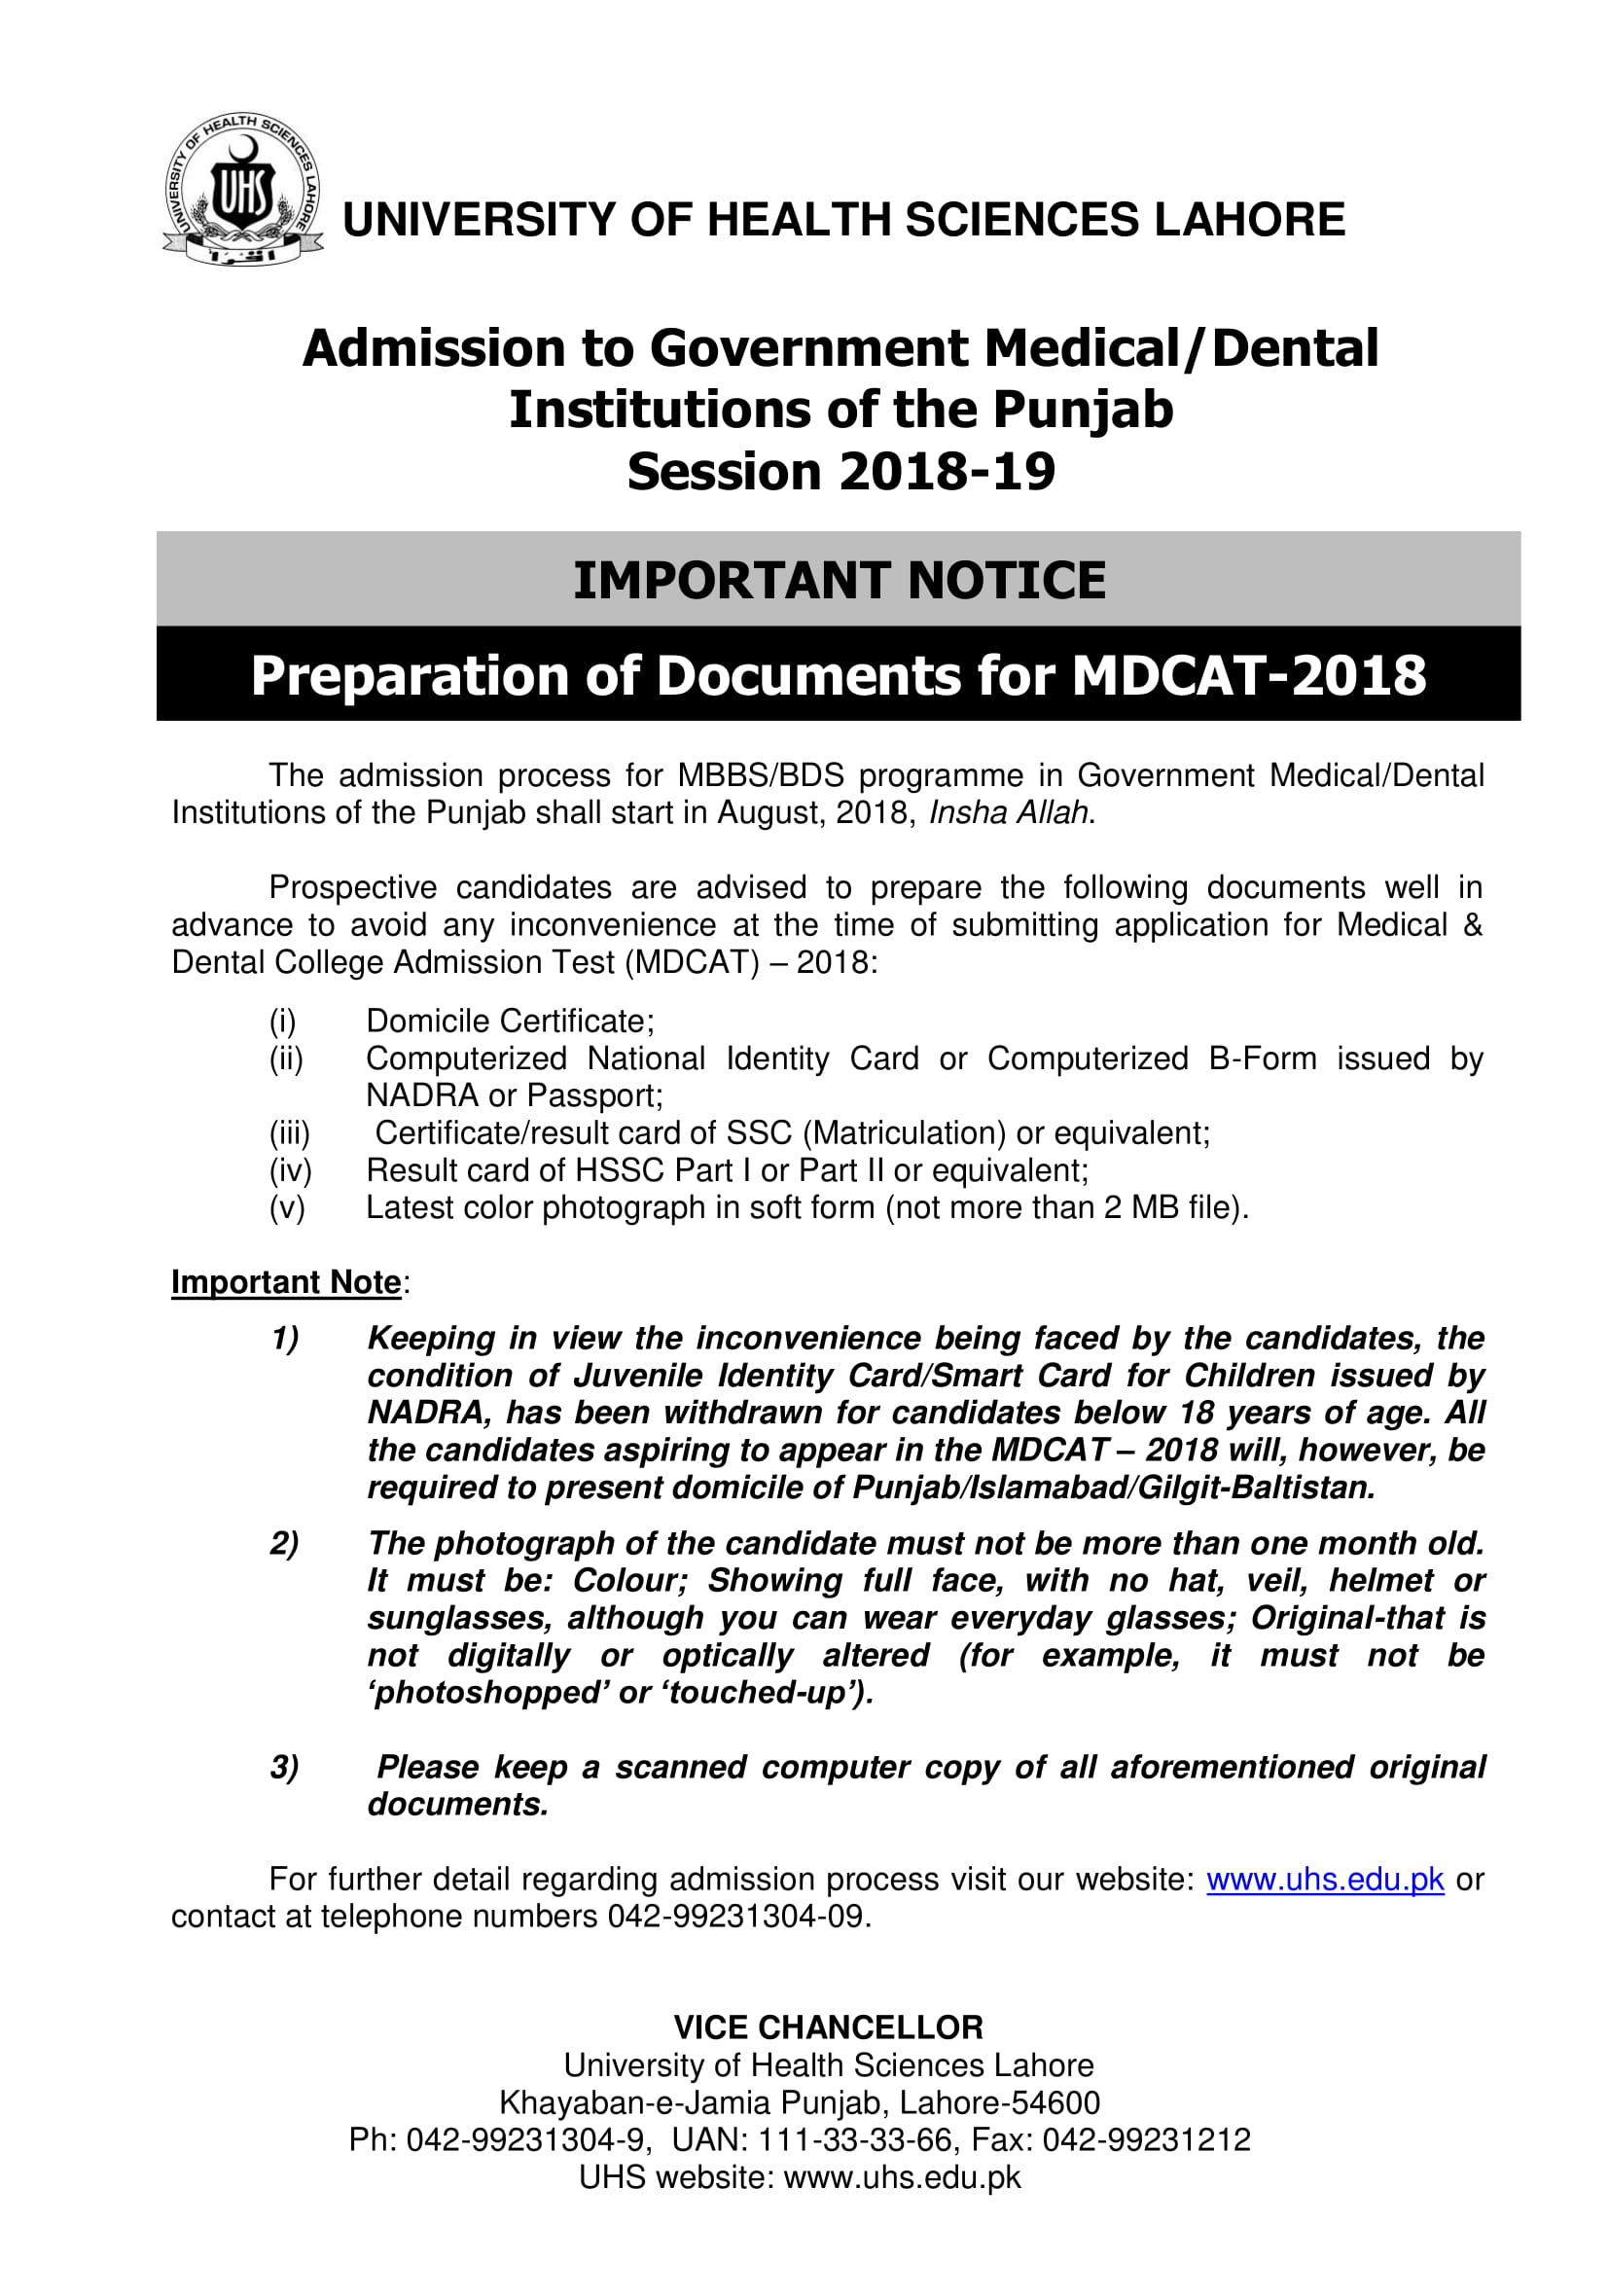 Important UHS Announcement! – Preparation of Documents for MDCAT 2018